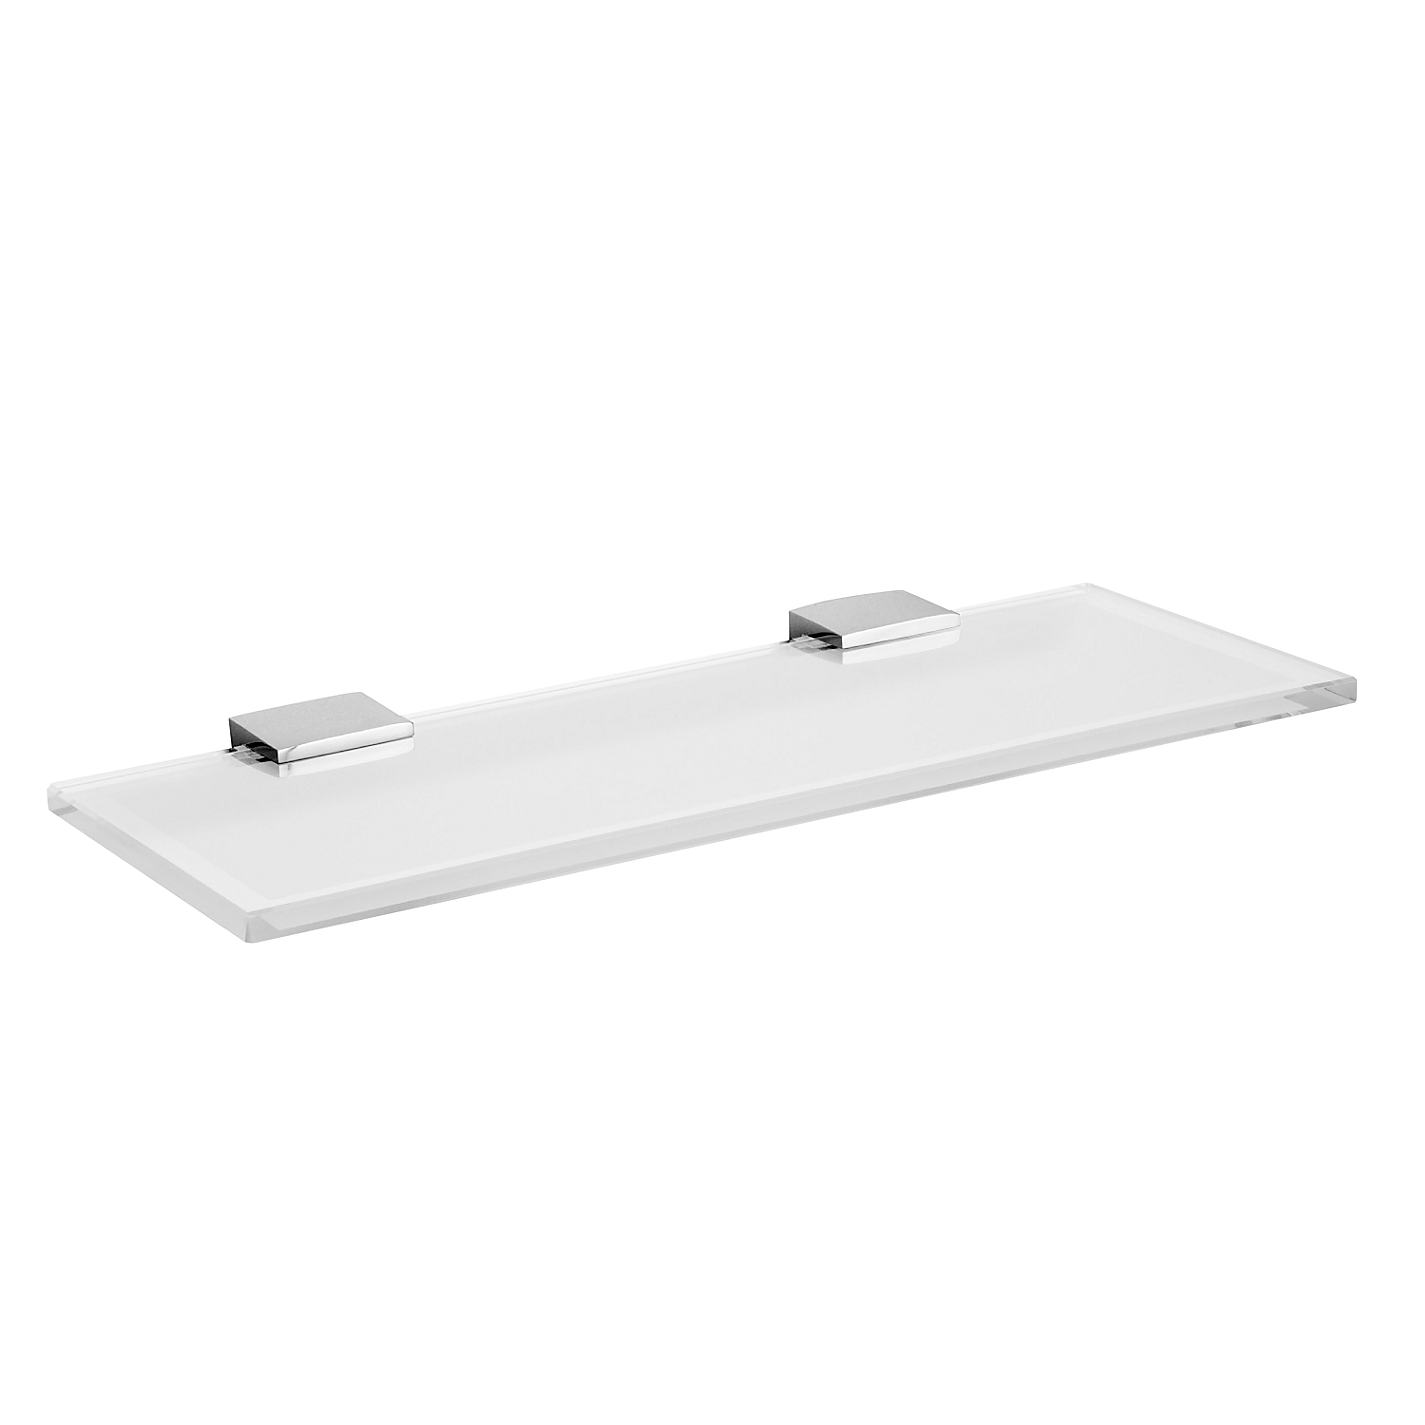 Miller Frosted Gl Bathroom Shelf John Lewis Small For Best 2017